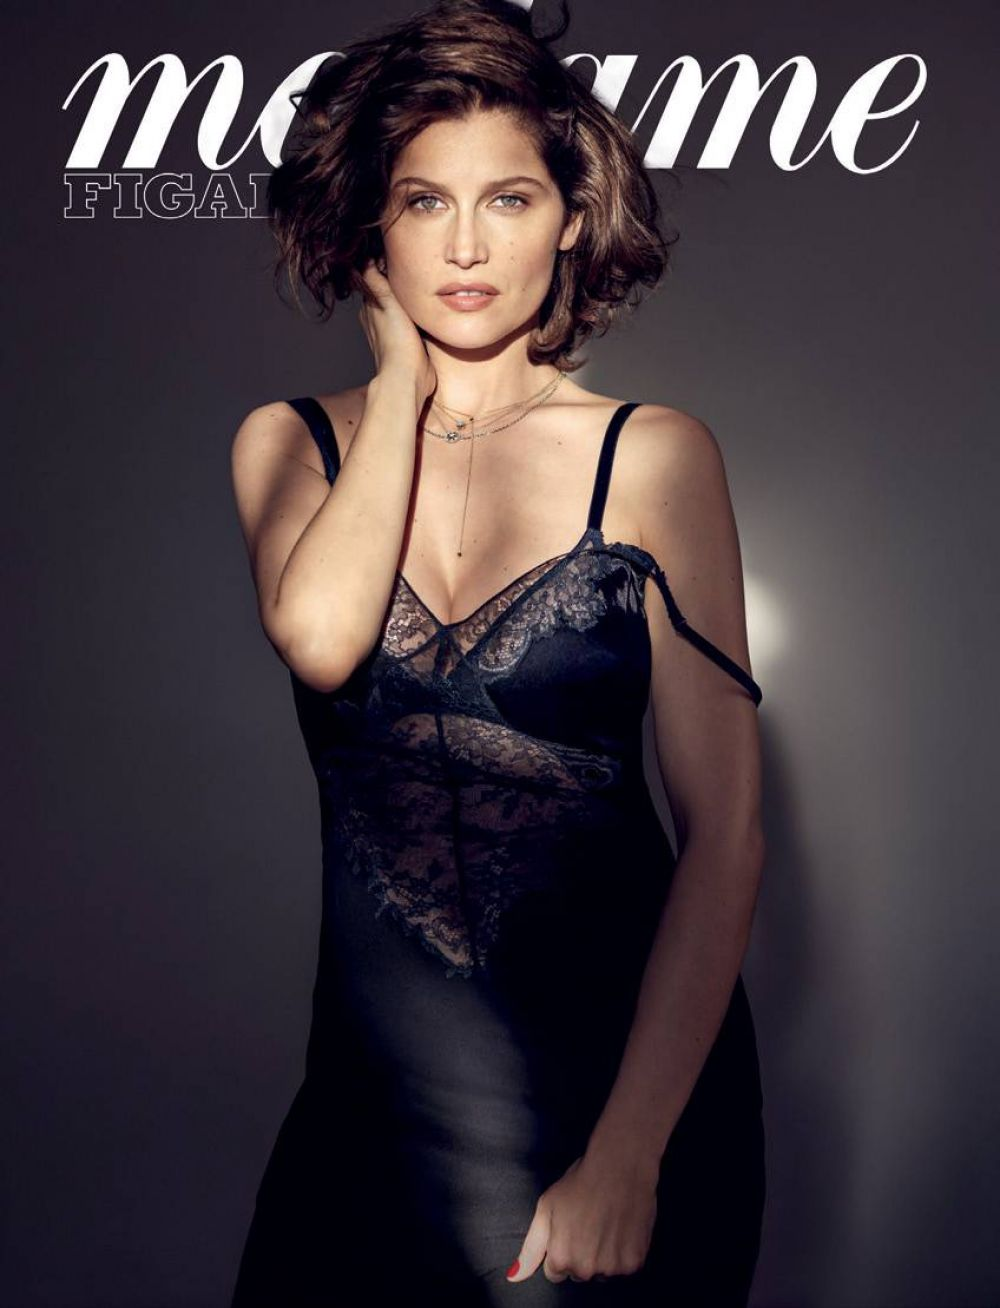 LAETITIA CASTA in Madame Figaro Magazine, May 2016 Issue